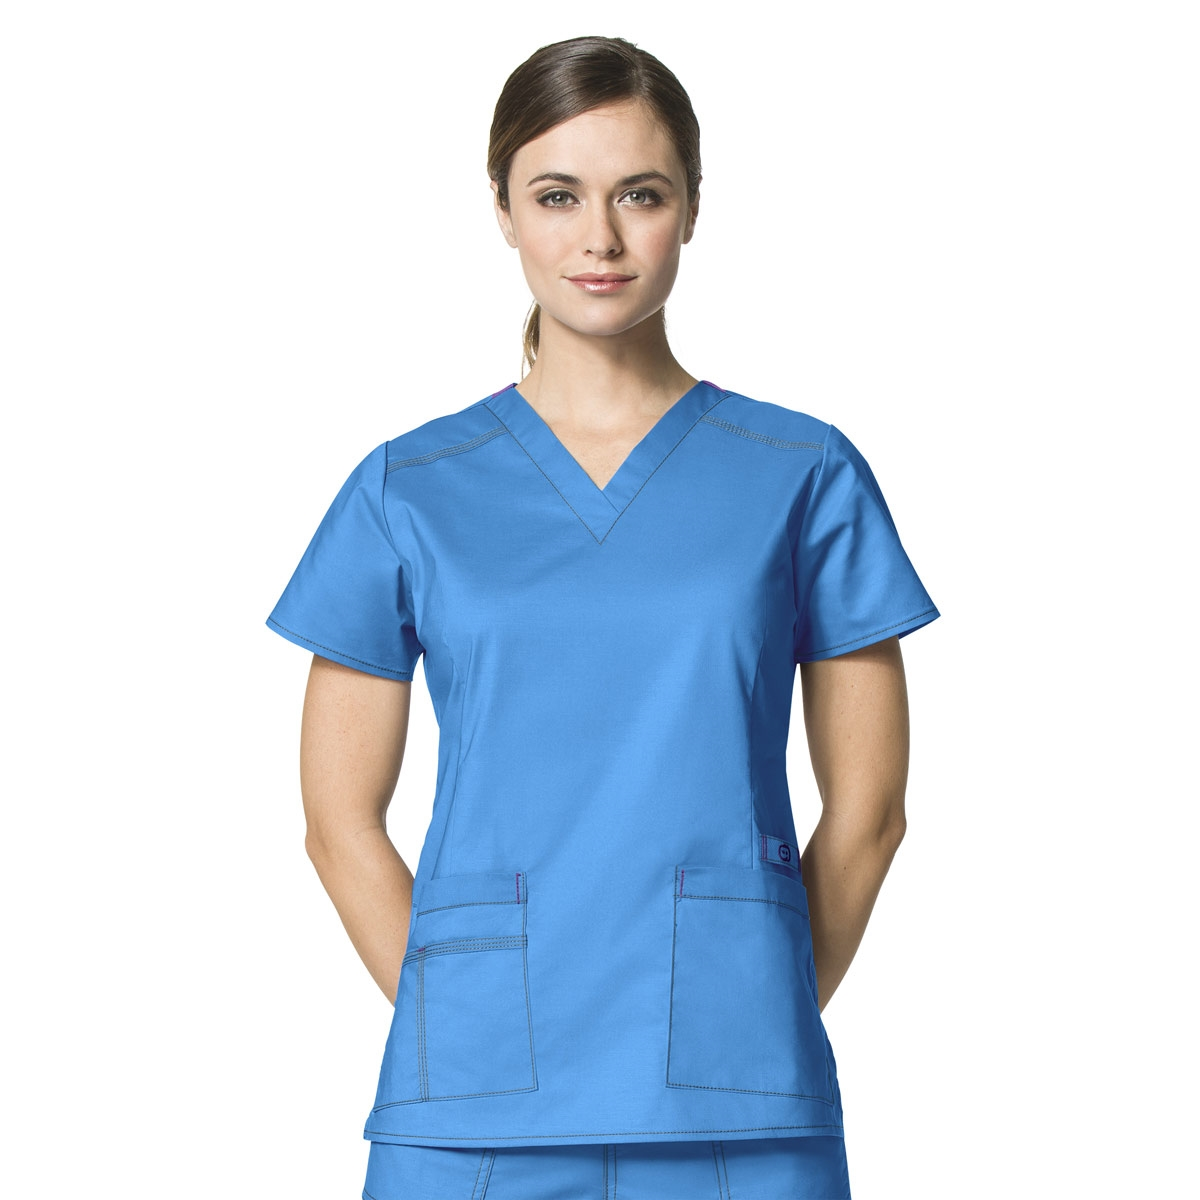 84d4e1501e4 WonderFLEX Verity V-Neck Top - WonderWink Scrubs